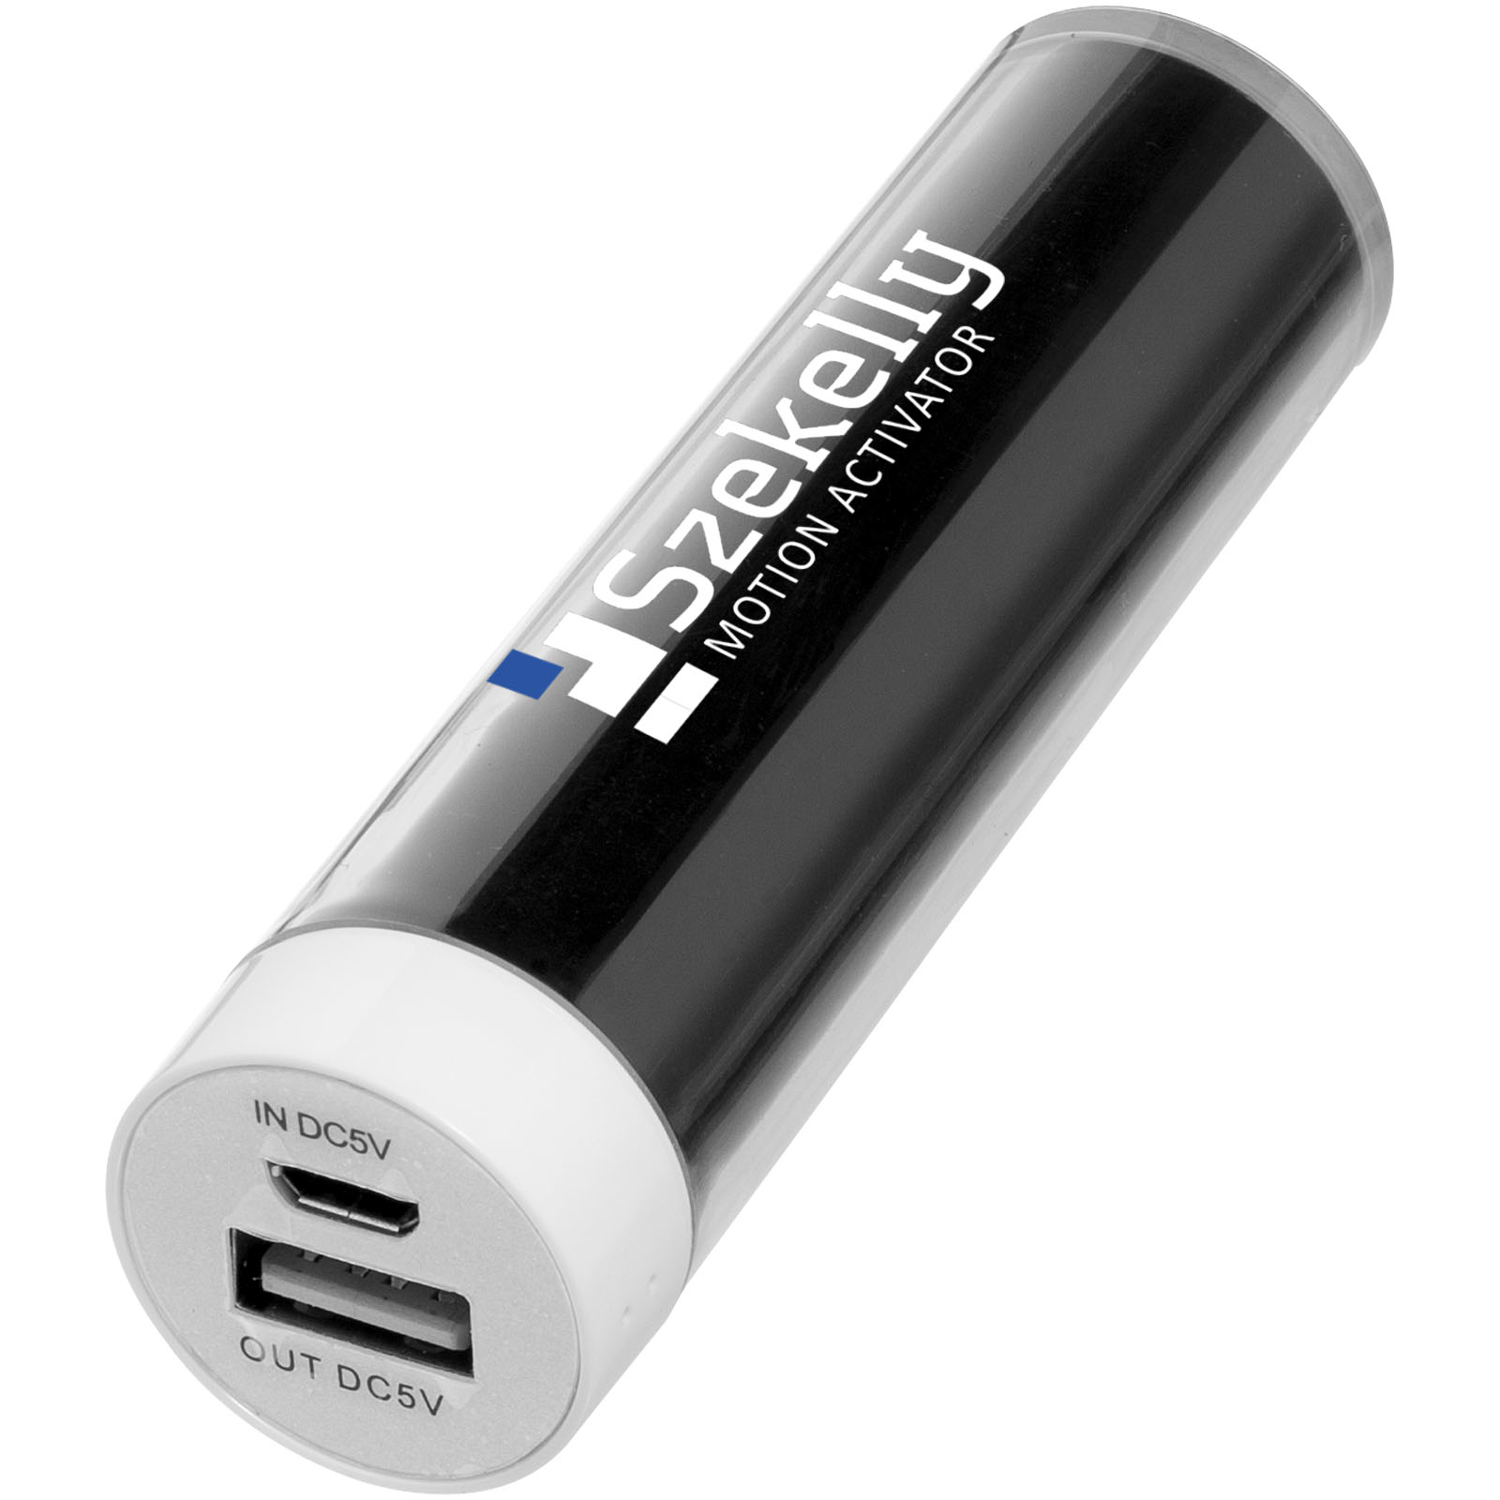 Dash Power Bank 2200Mah